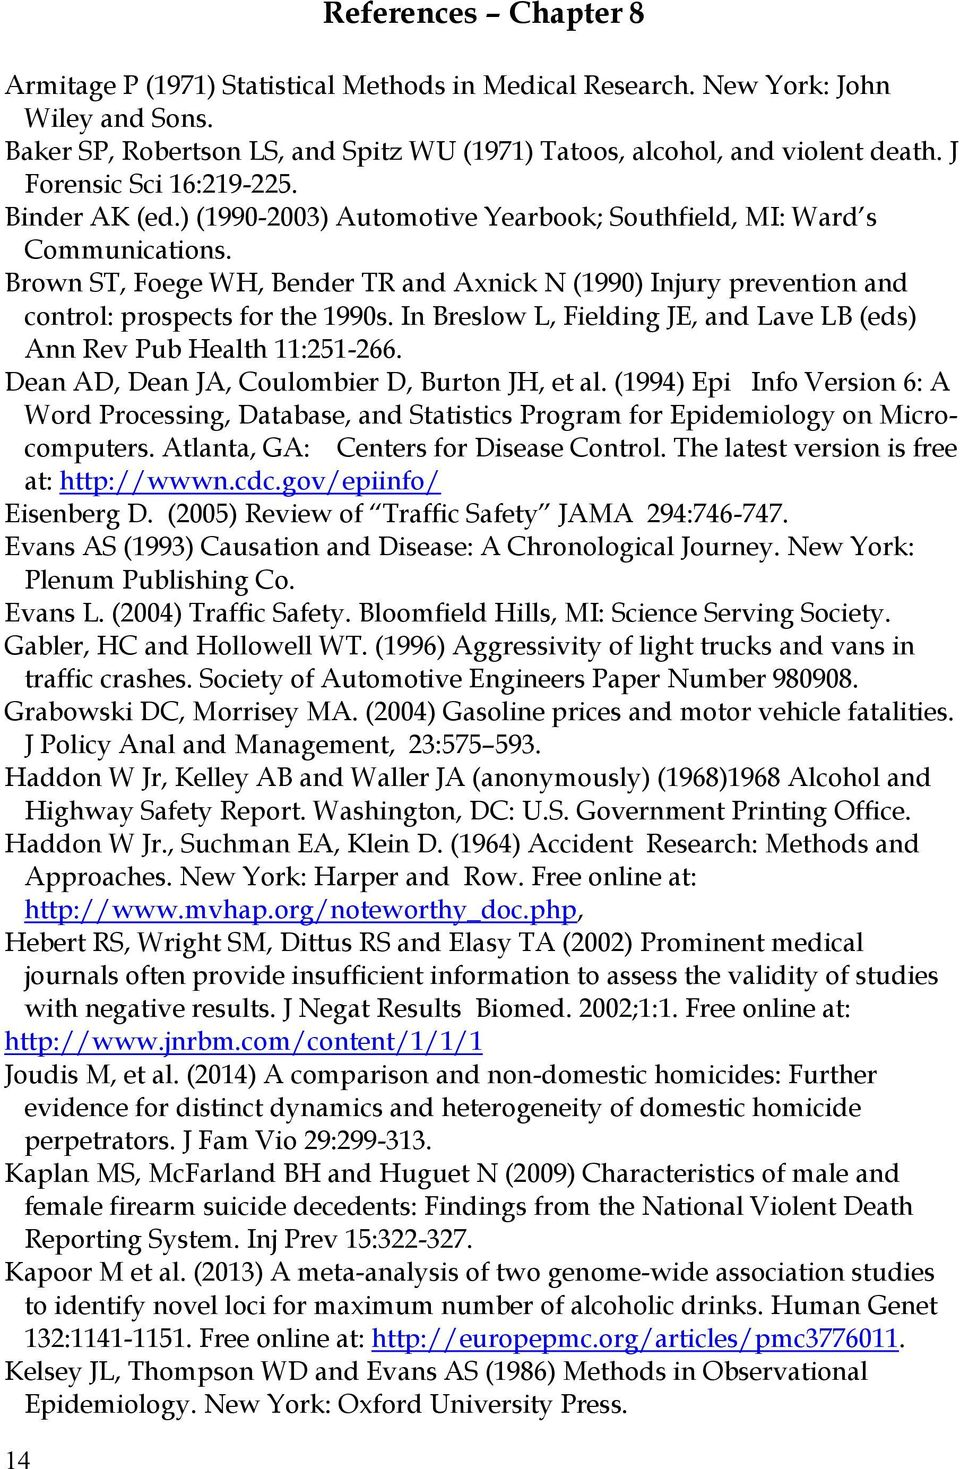 Brown ST, Foege WH, Bender TR and Axnick N (1990) Injury prevention and control: prospects for the 1990s. In Breslow L, Fielding JE, and Lave LB (eds) Ann Rev Pub Health 11:251-266.